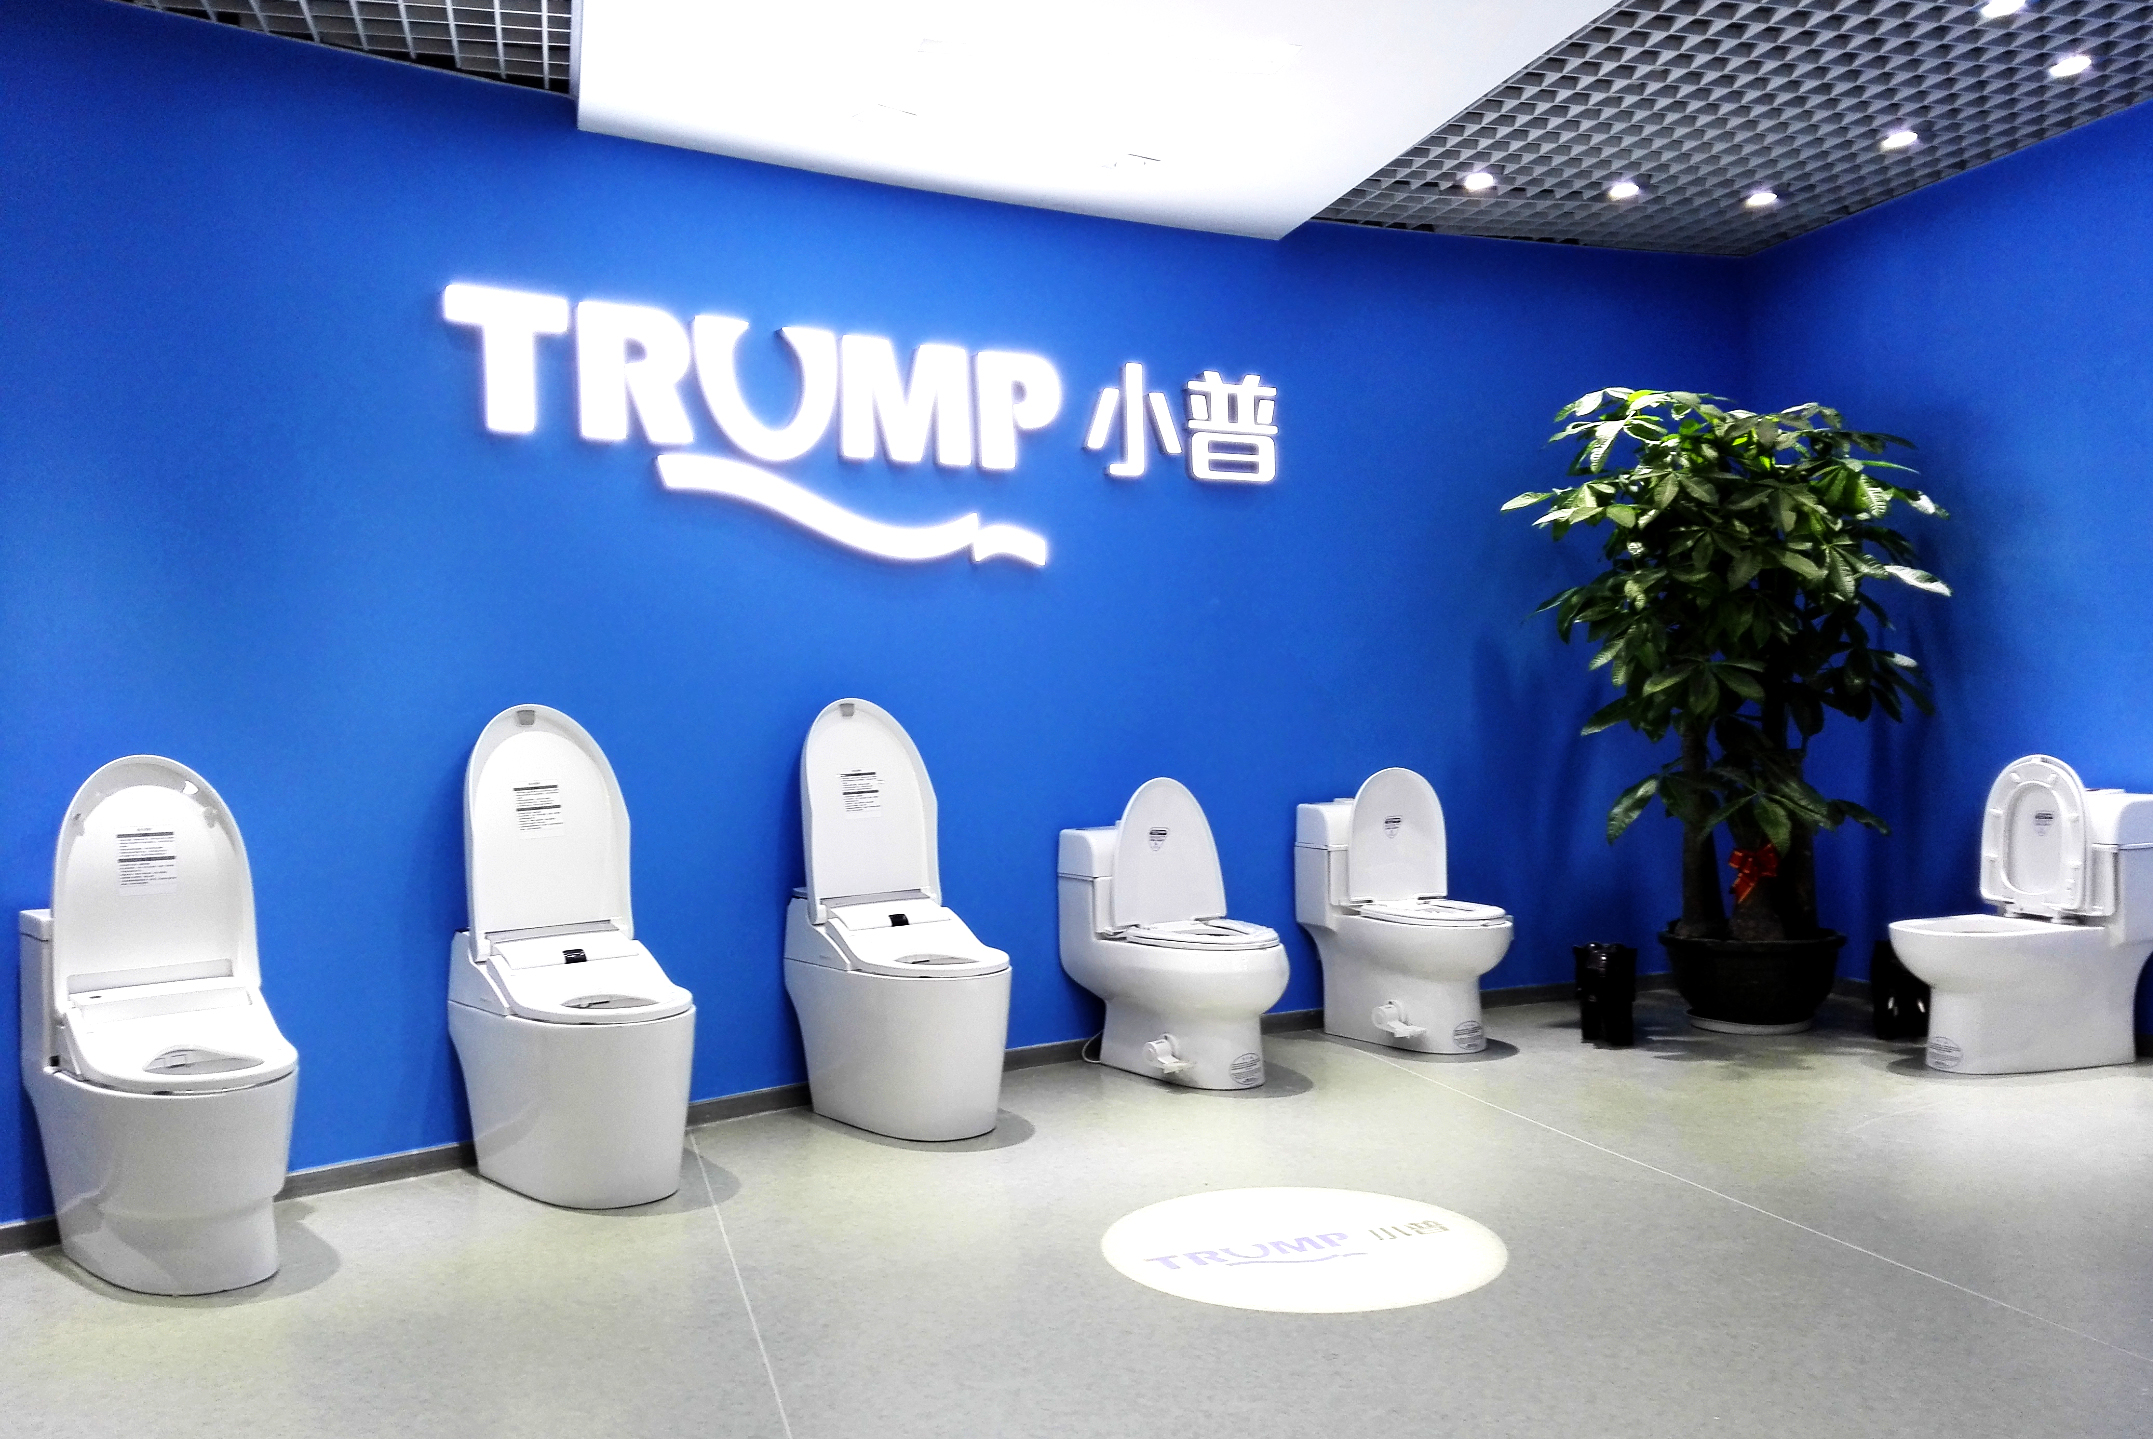 Trump Toilet\' Name Is Entirely Coincidental, Chinese Firm Says